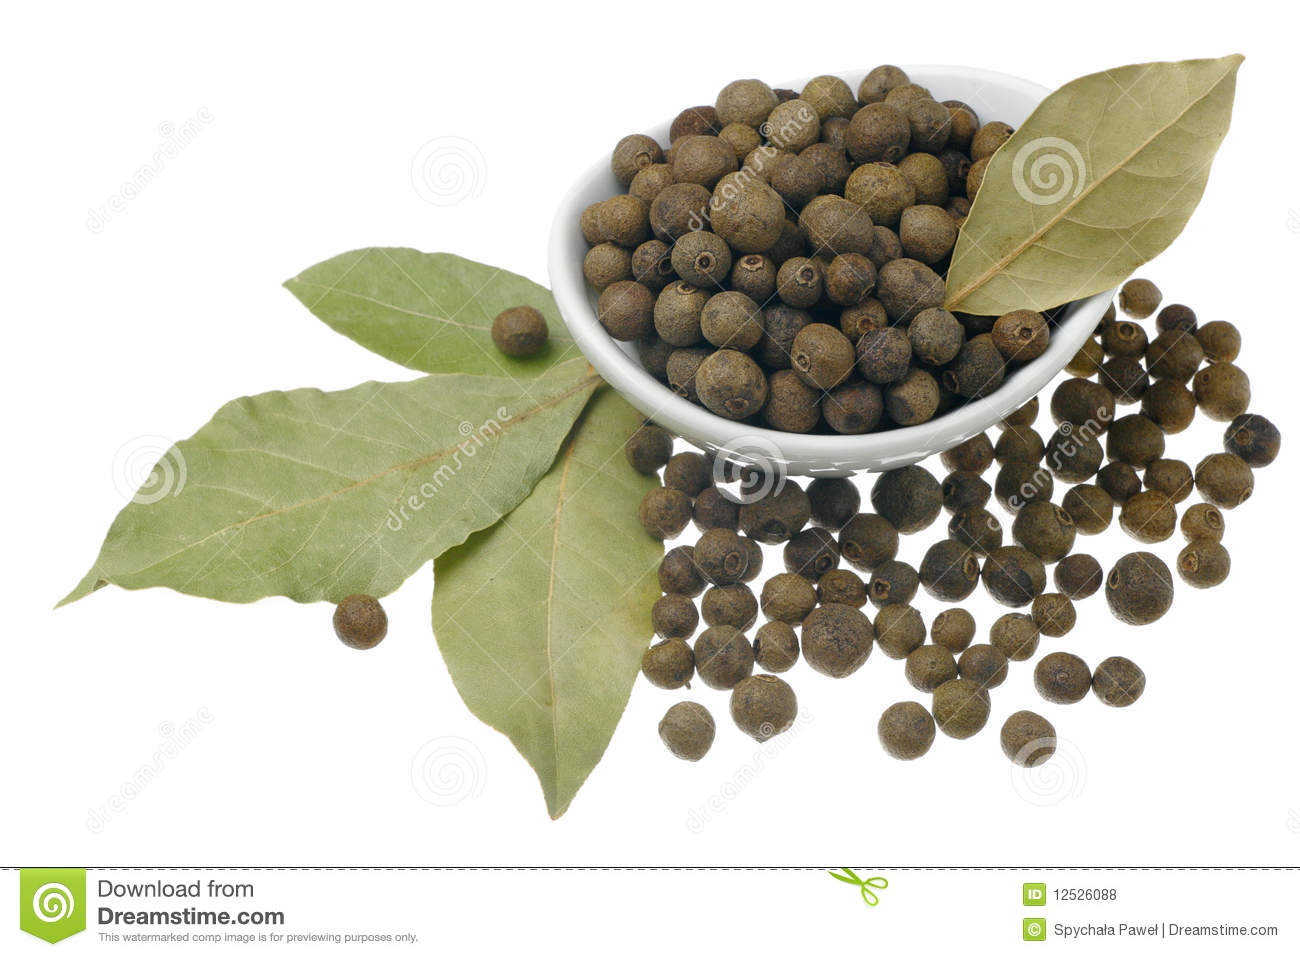 Allspice and bay leaves.